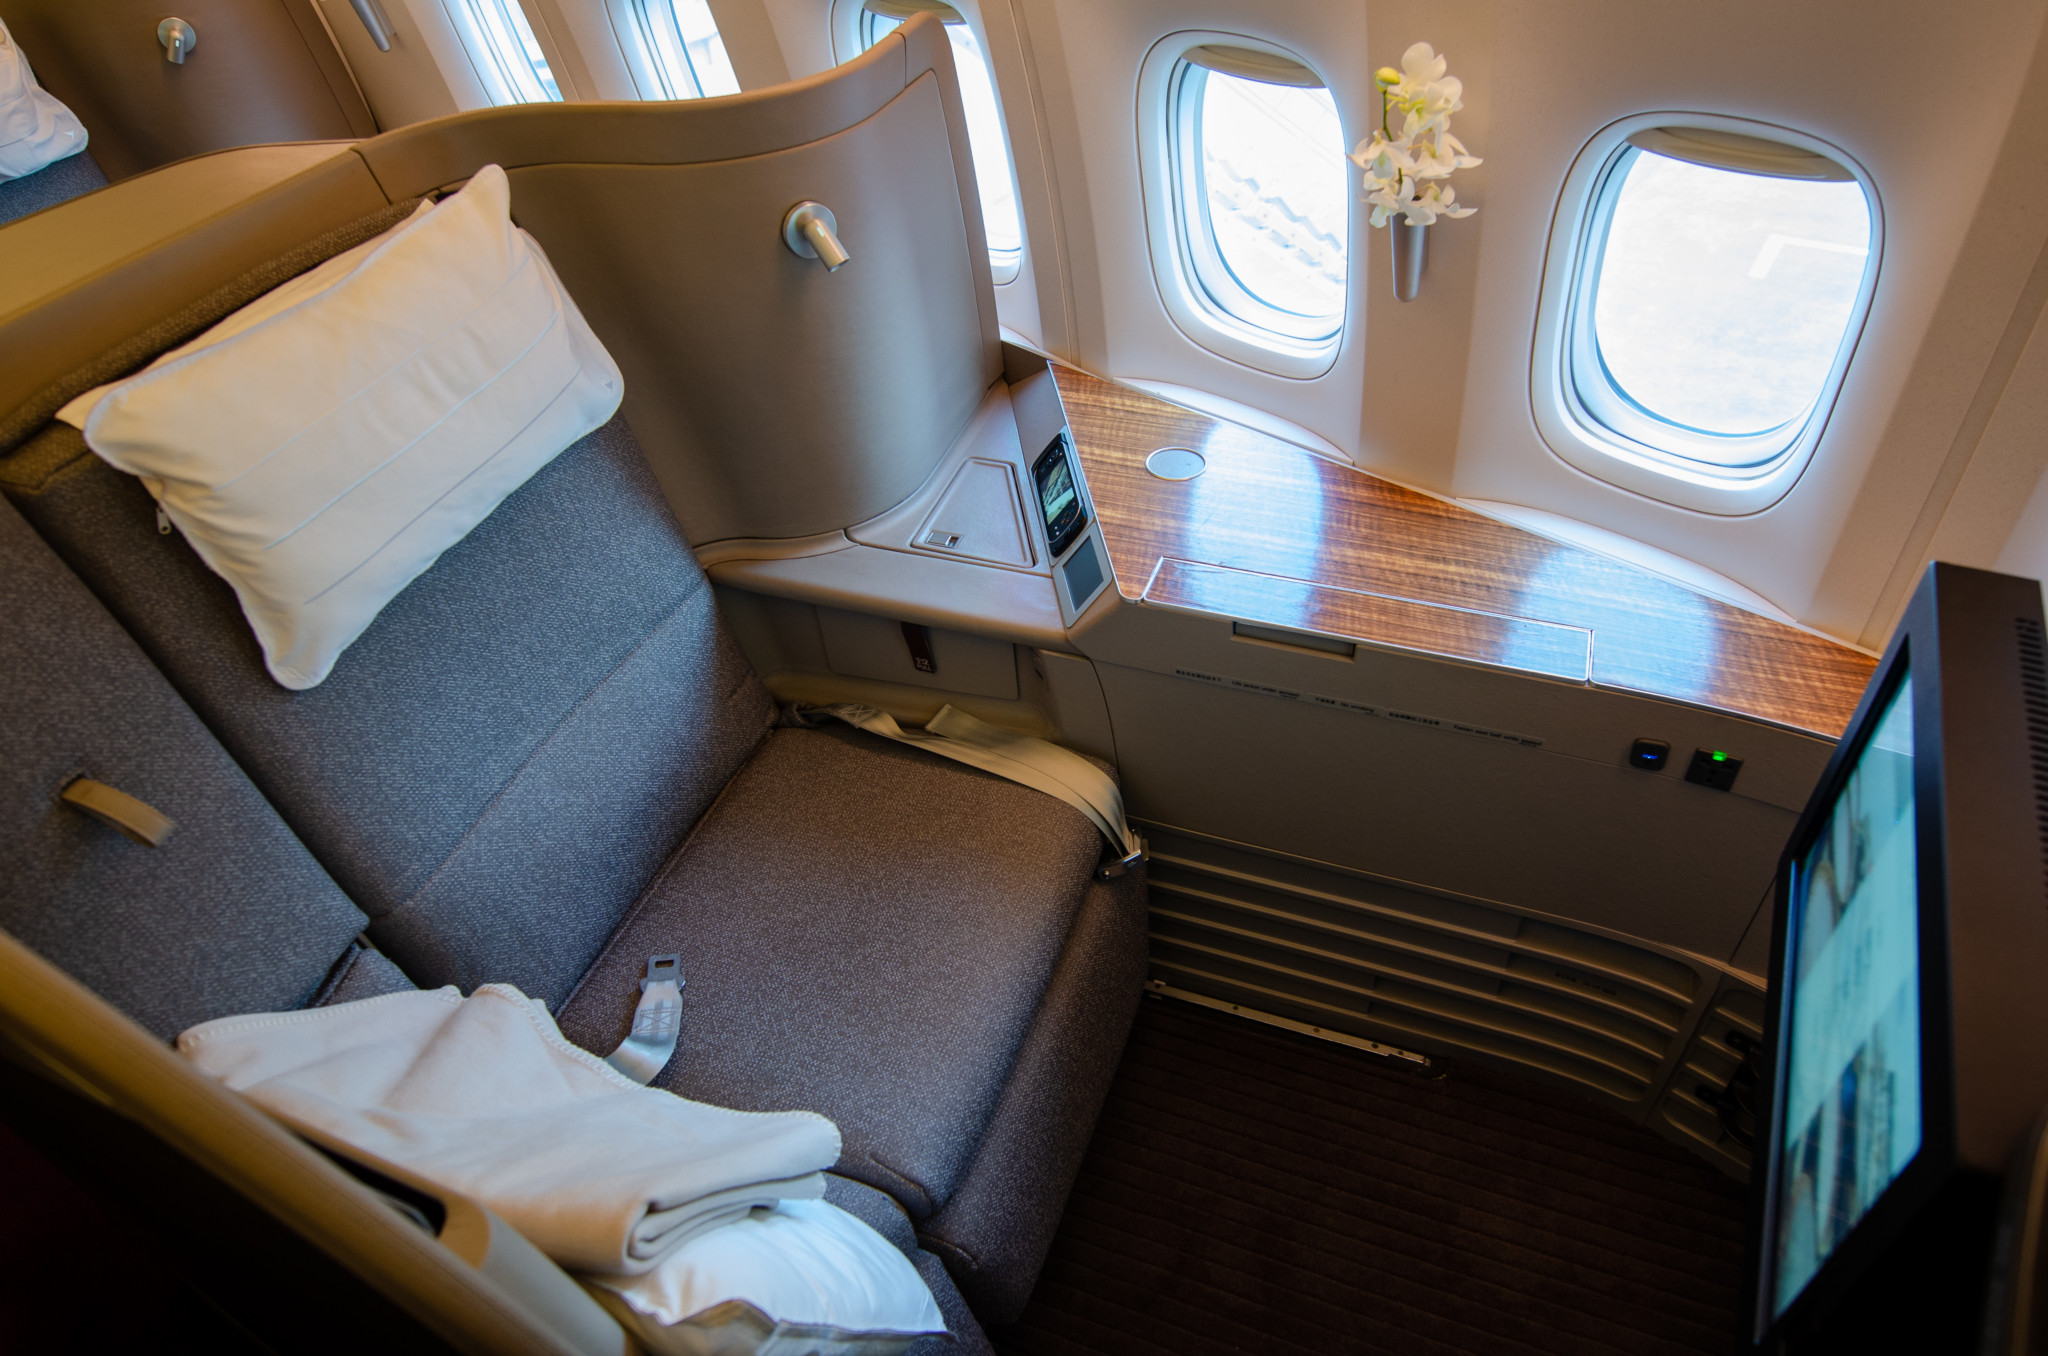 Sitz in der Cathay Pacific First Class